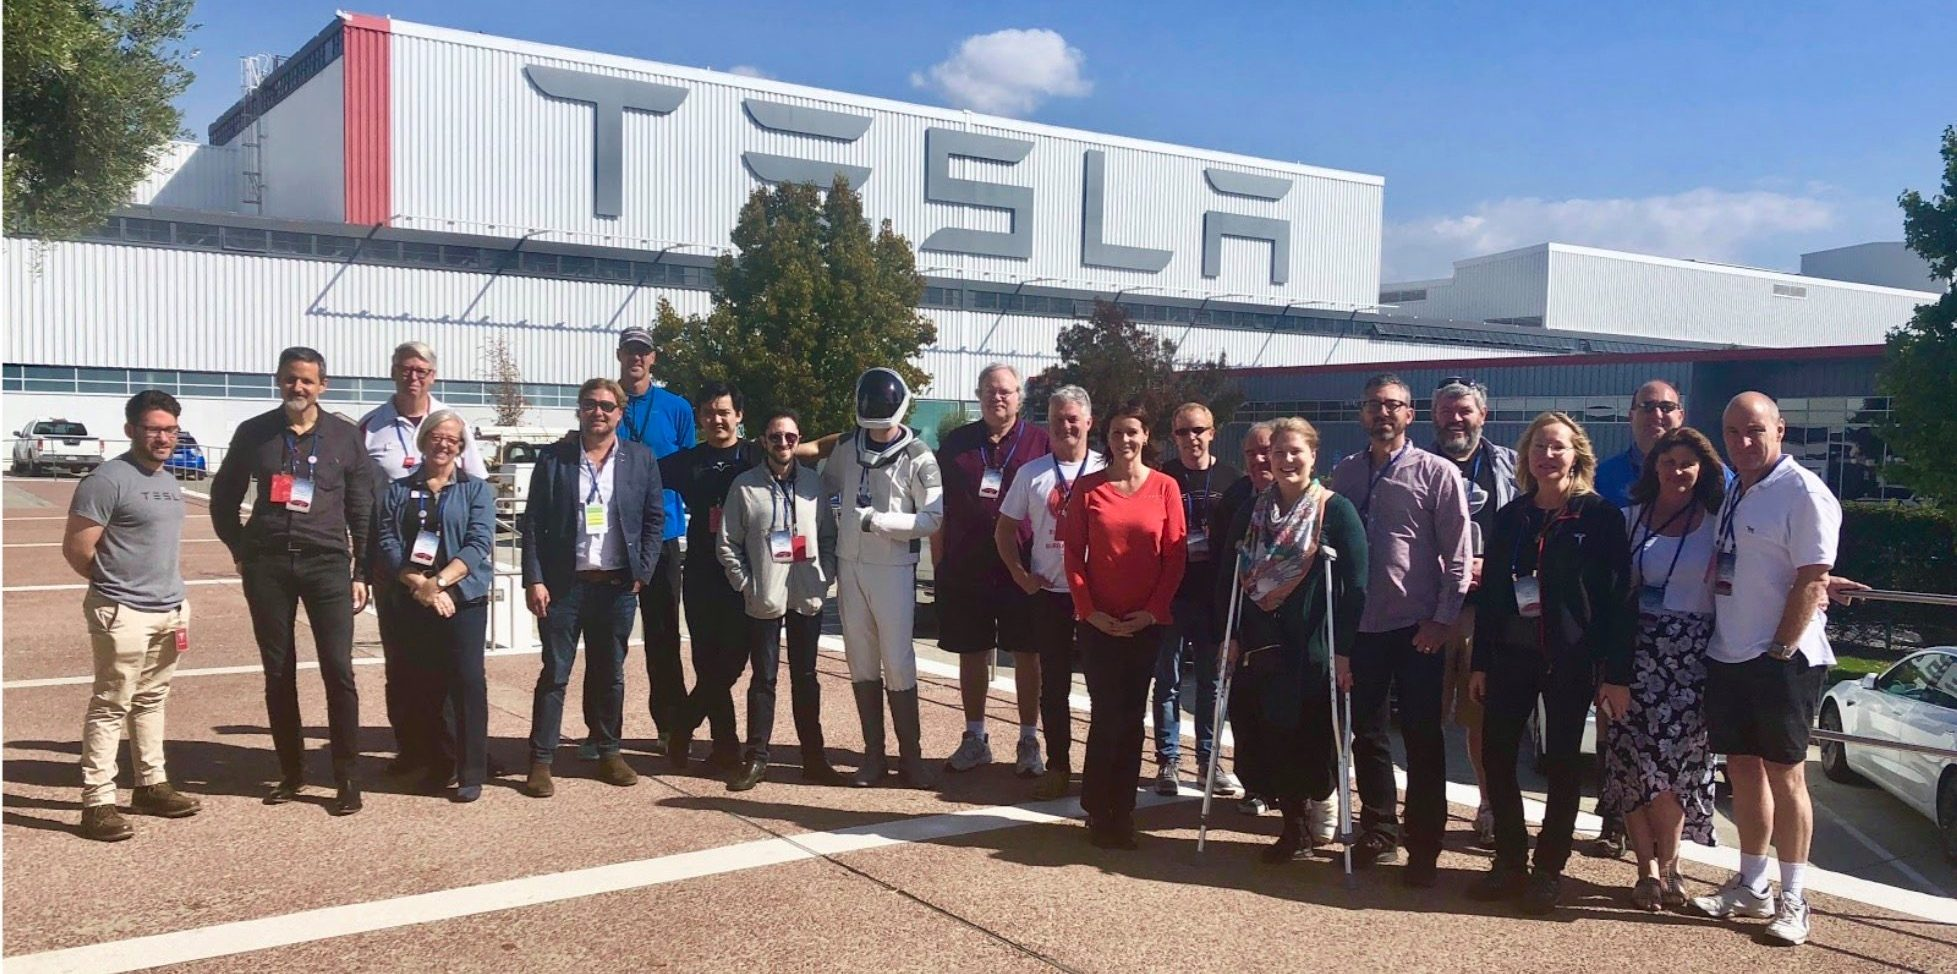 Tesla owners gathered at Club Leadership Summit for annual meeting